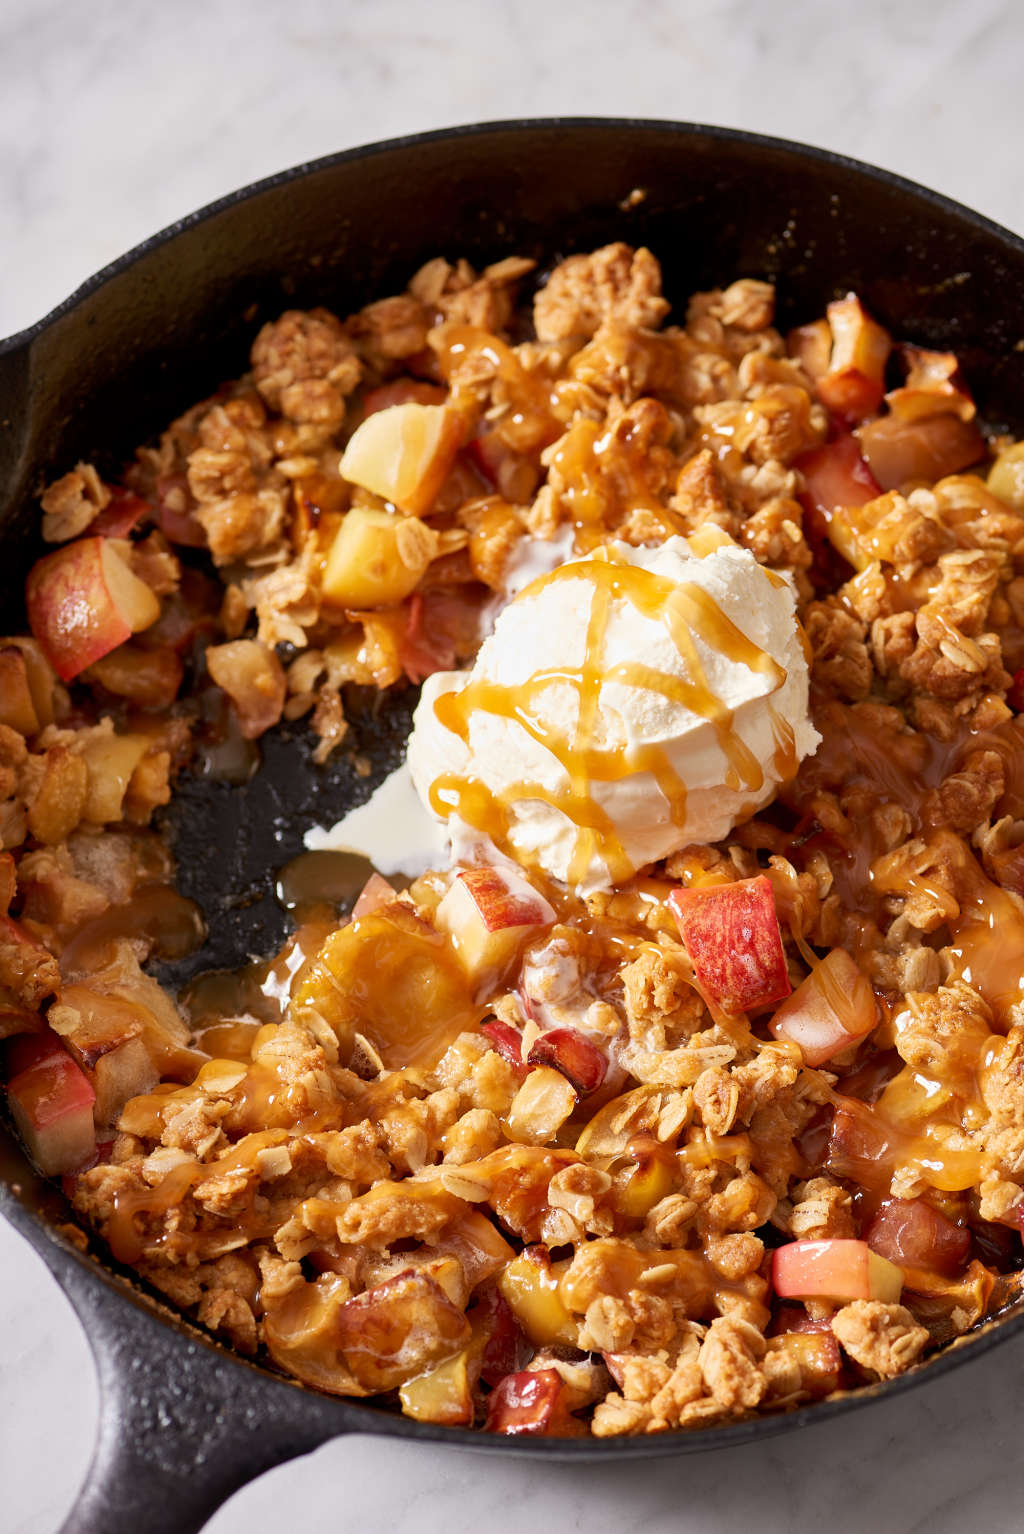 This Skillet Apple Crisp Is for Lazy Cooks